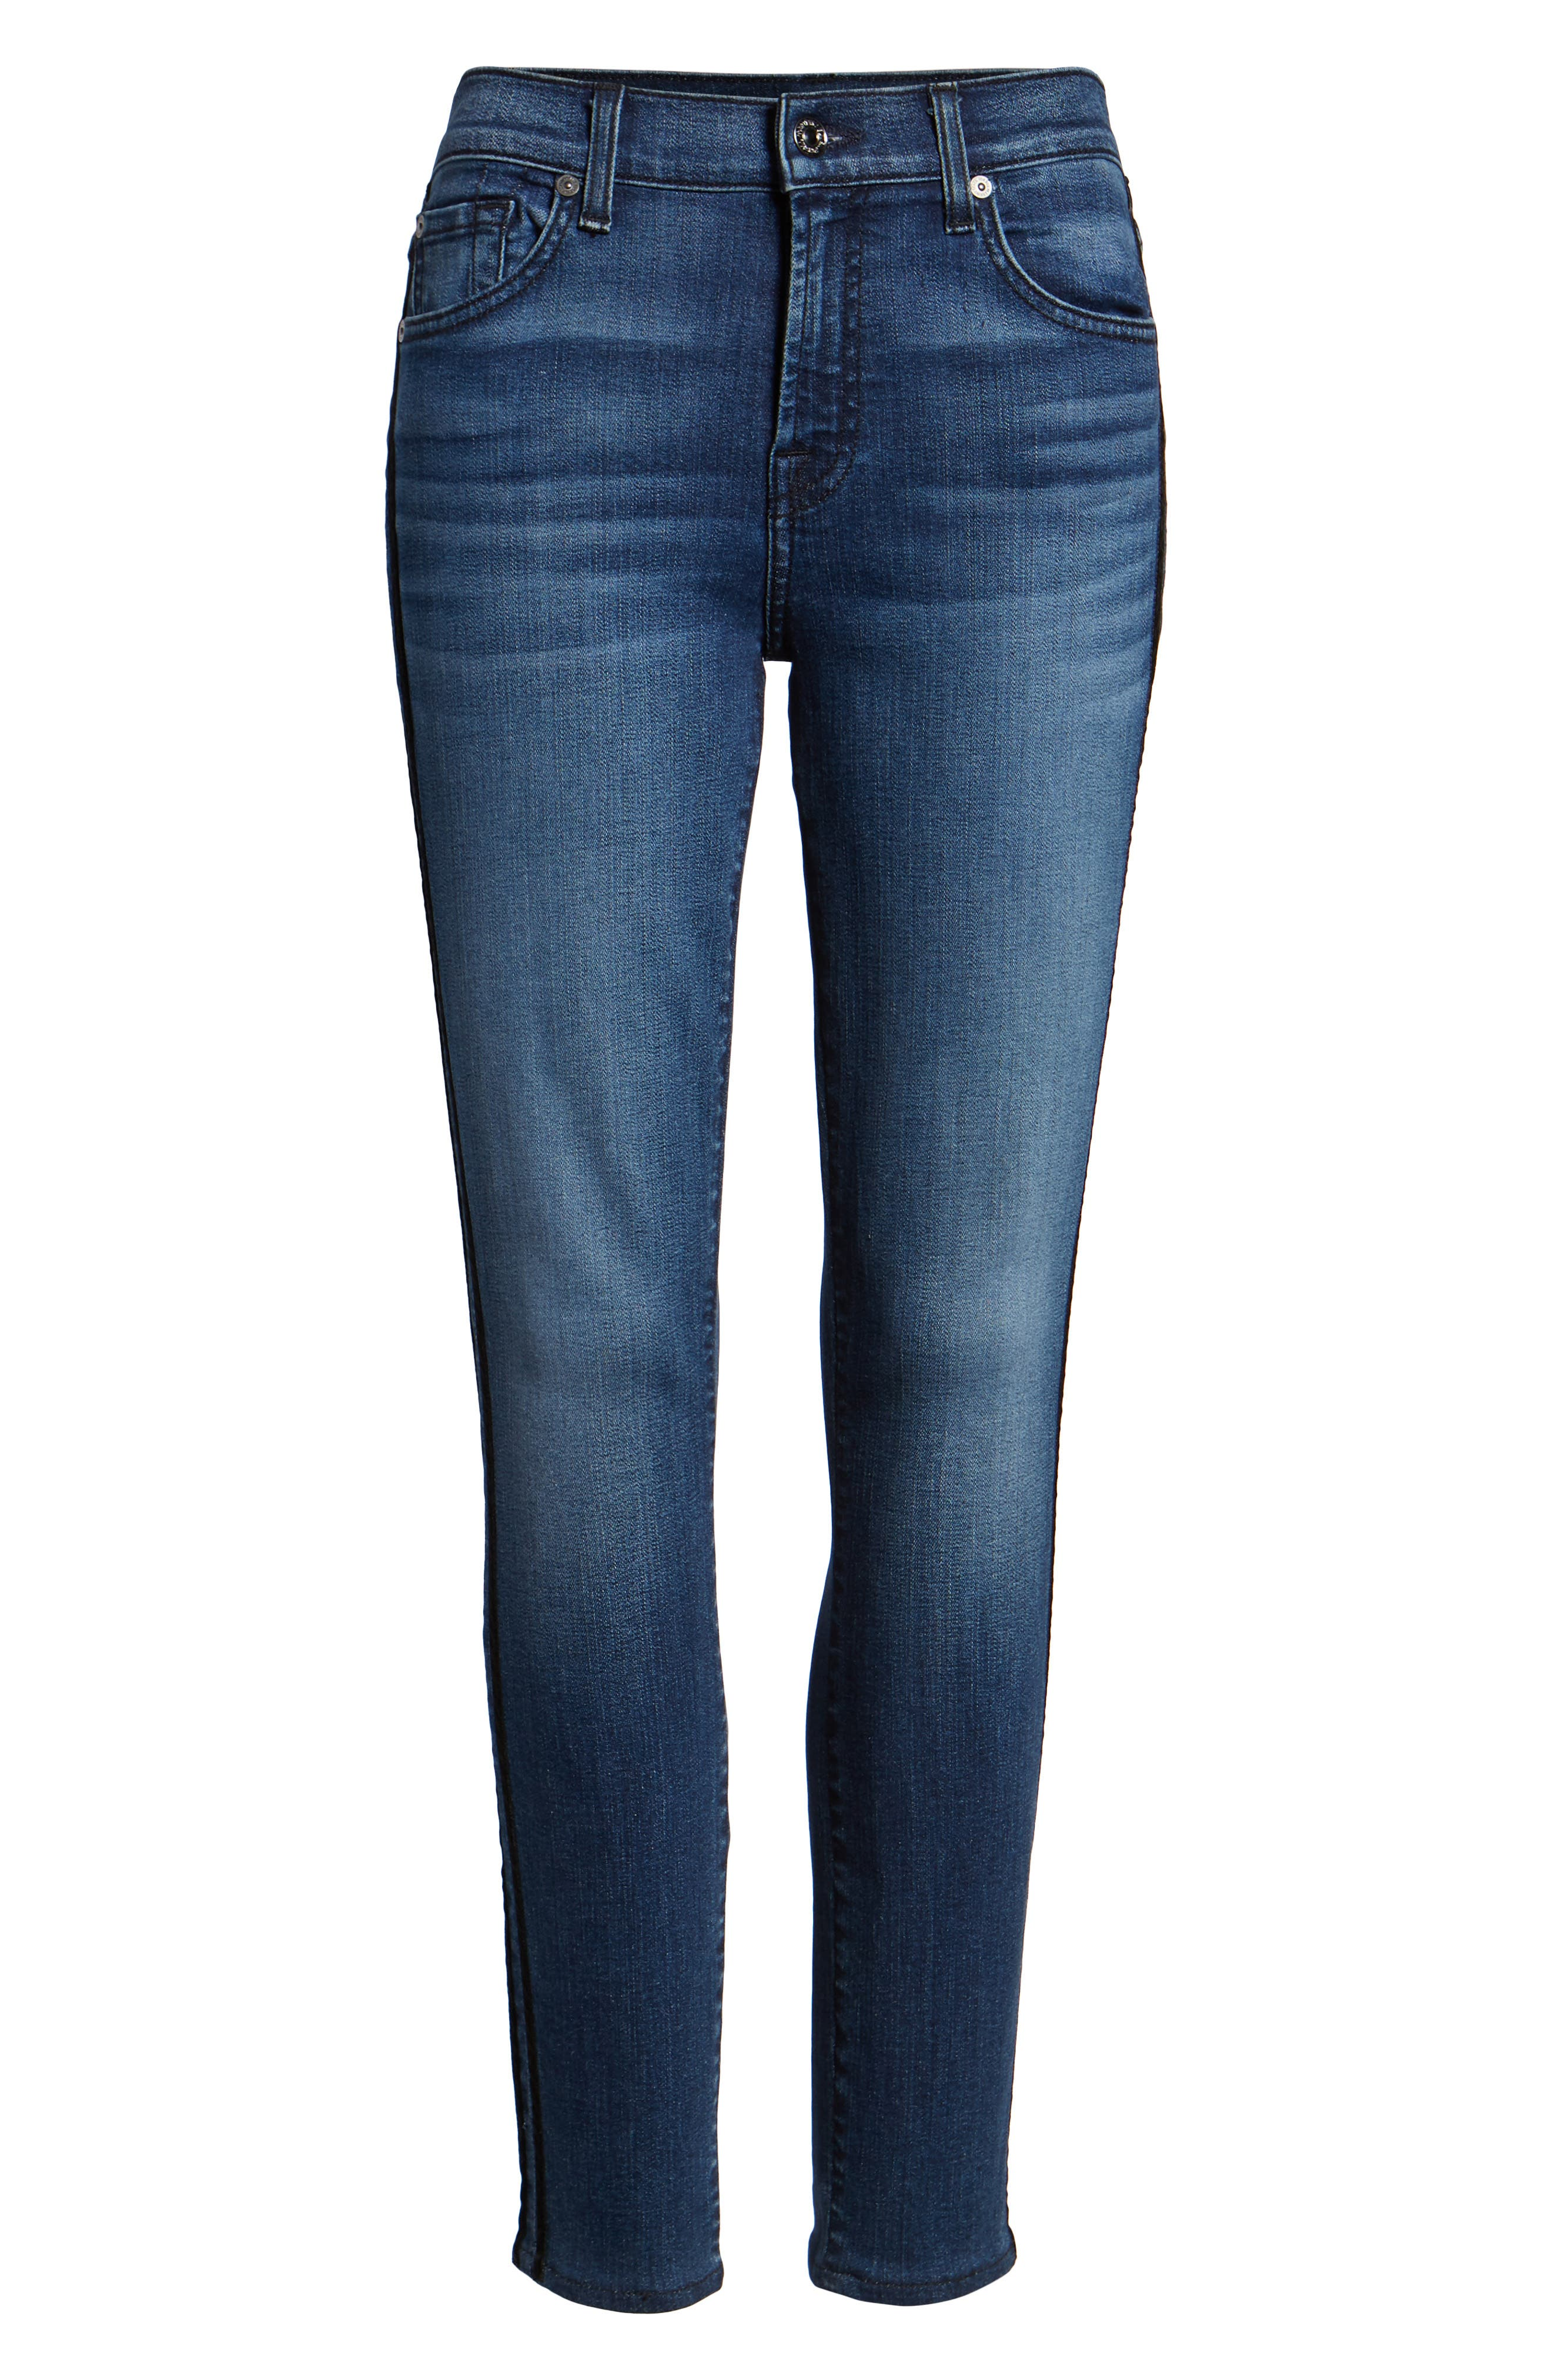 Ankle Skinny Double Stripes Jeans,                             Alternate thumbnail 7, color,                             400